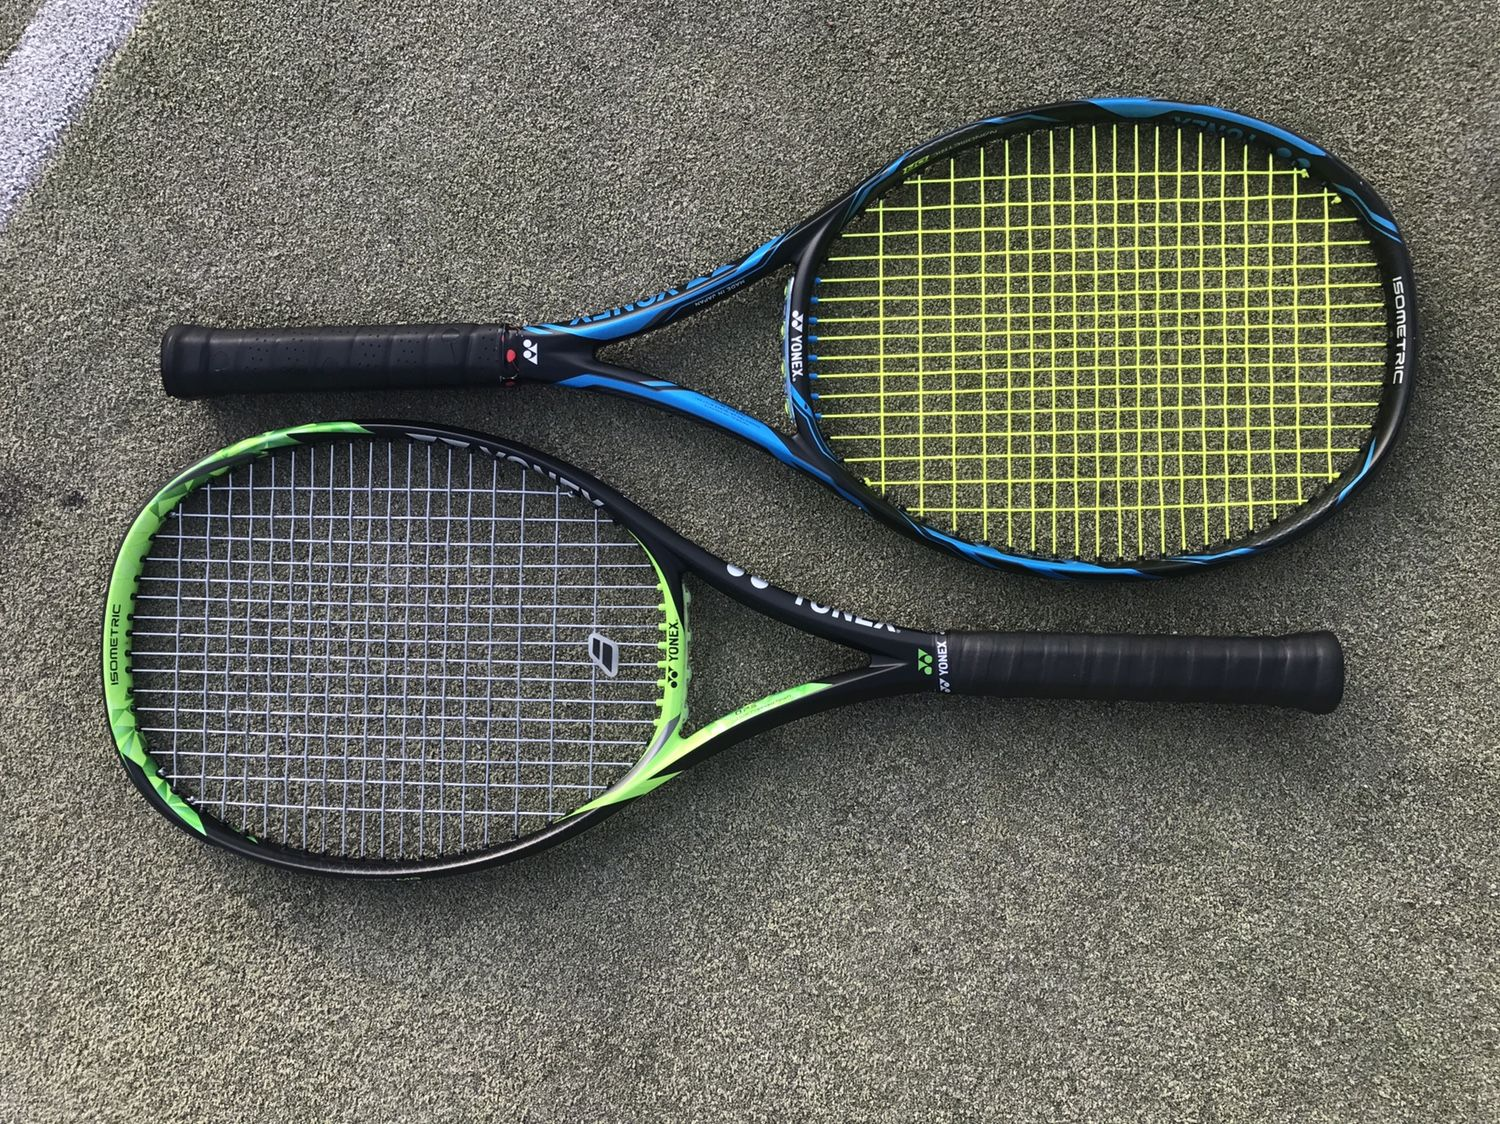 Reviews For The Best Tennis Racquets Tennis Racket Pro Racquets Tennis Tennis Racket